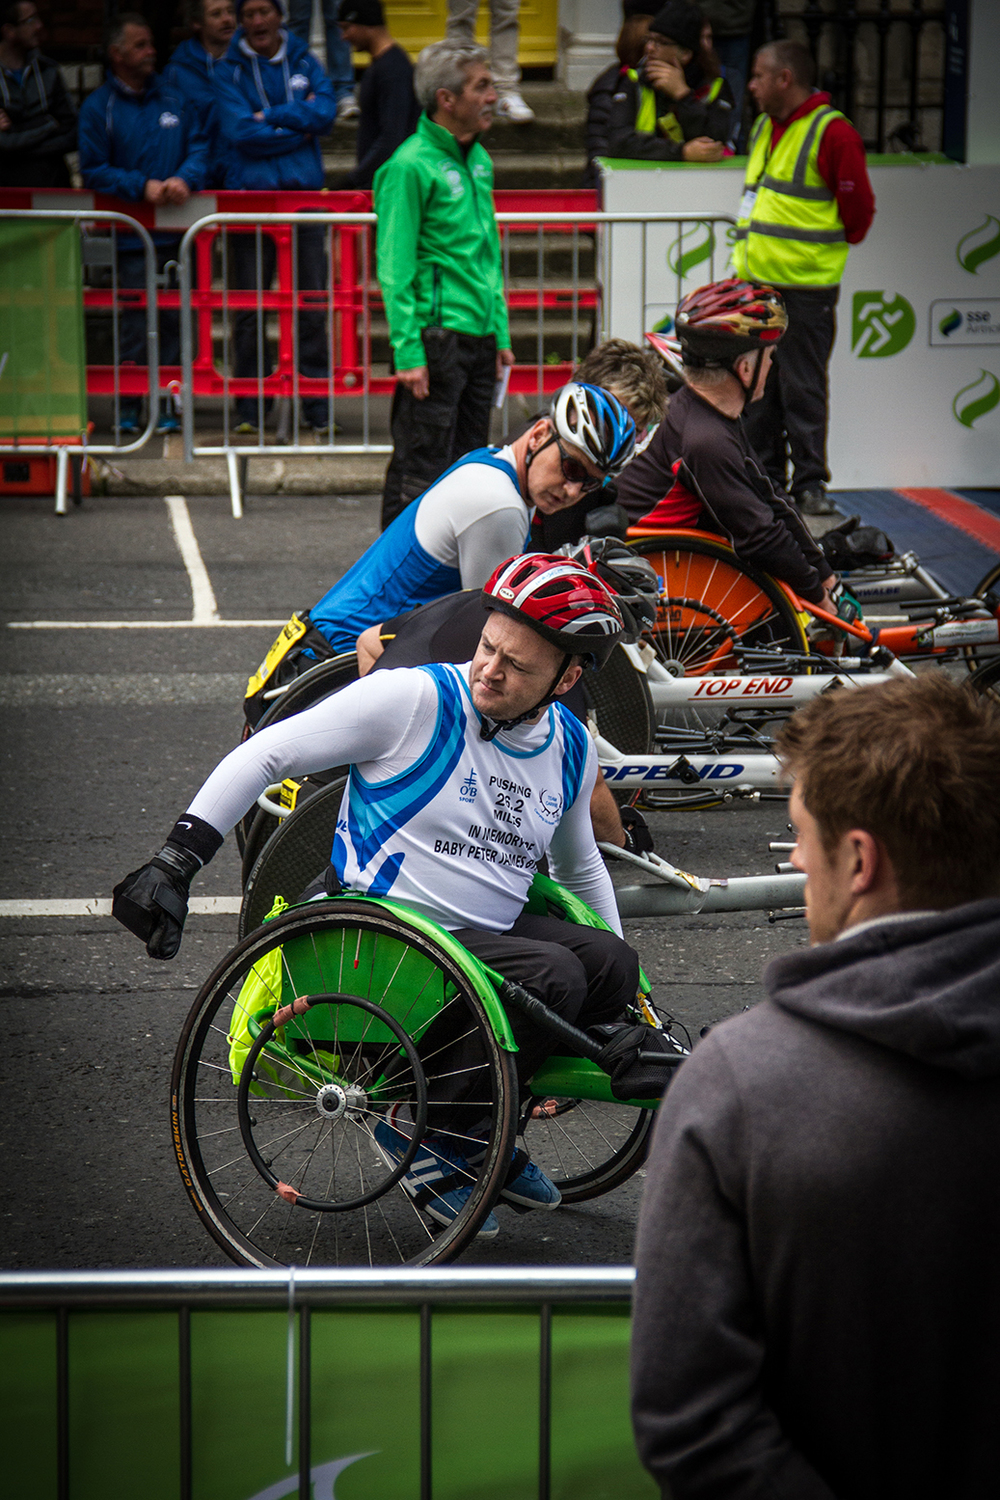 Wheelchair racers at the Dublin city marathon